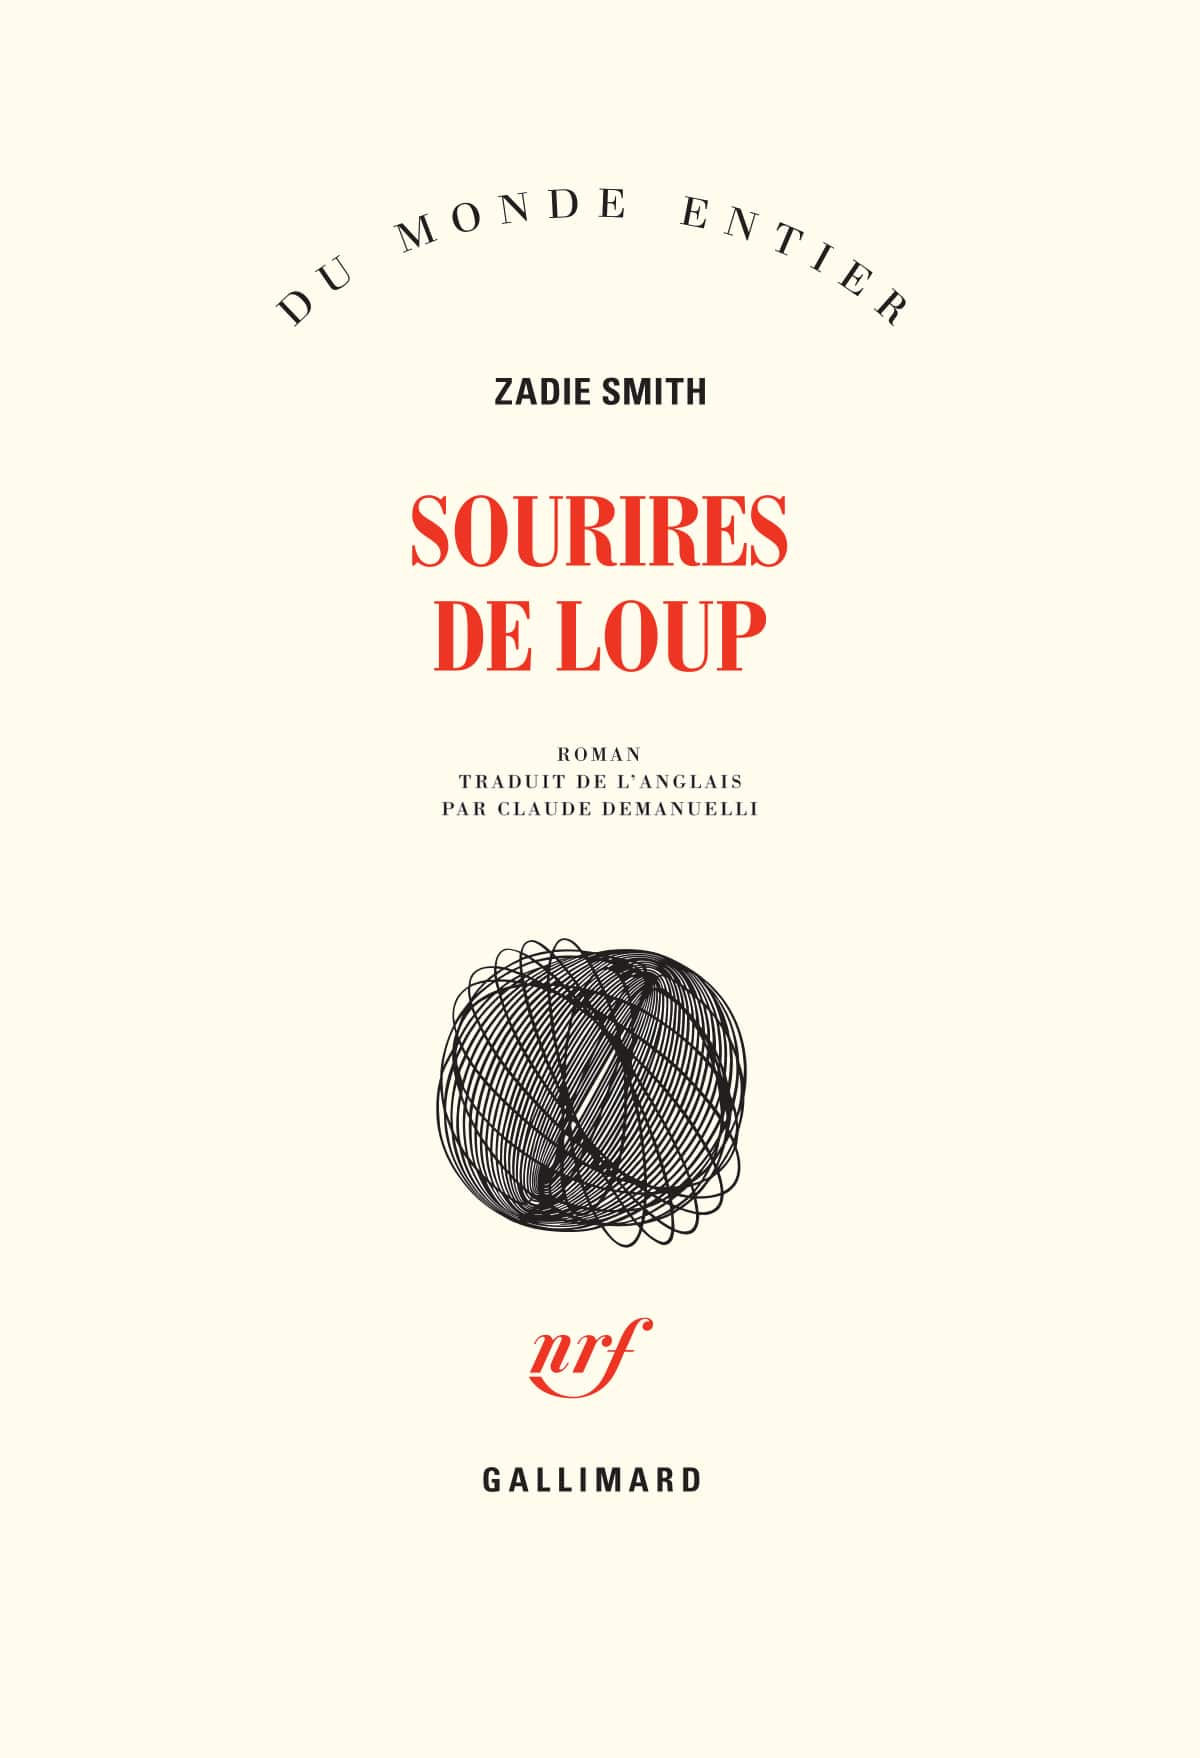 Sourires de loup de Zadie Smith, un regard étonnant sur l'immigration